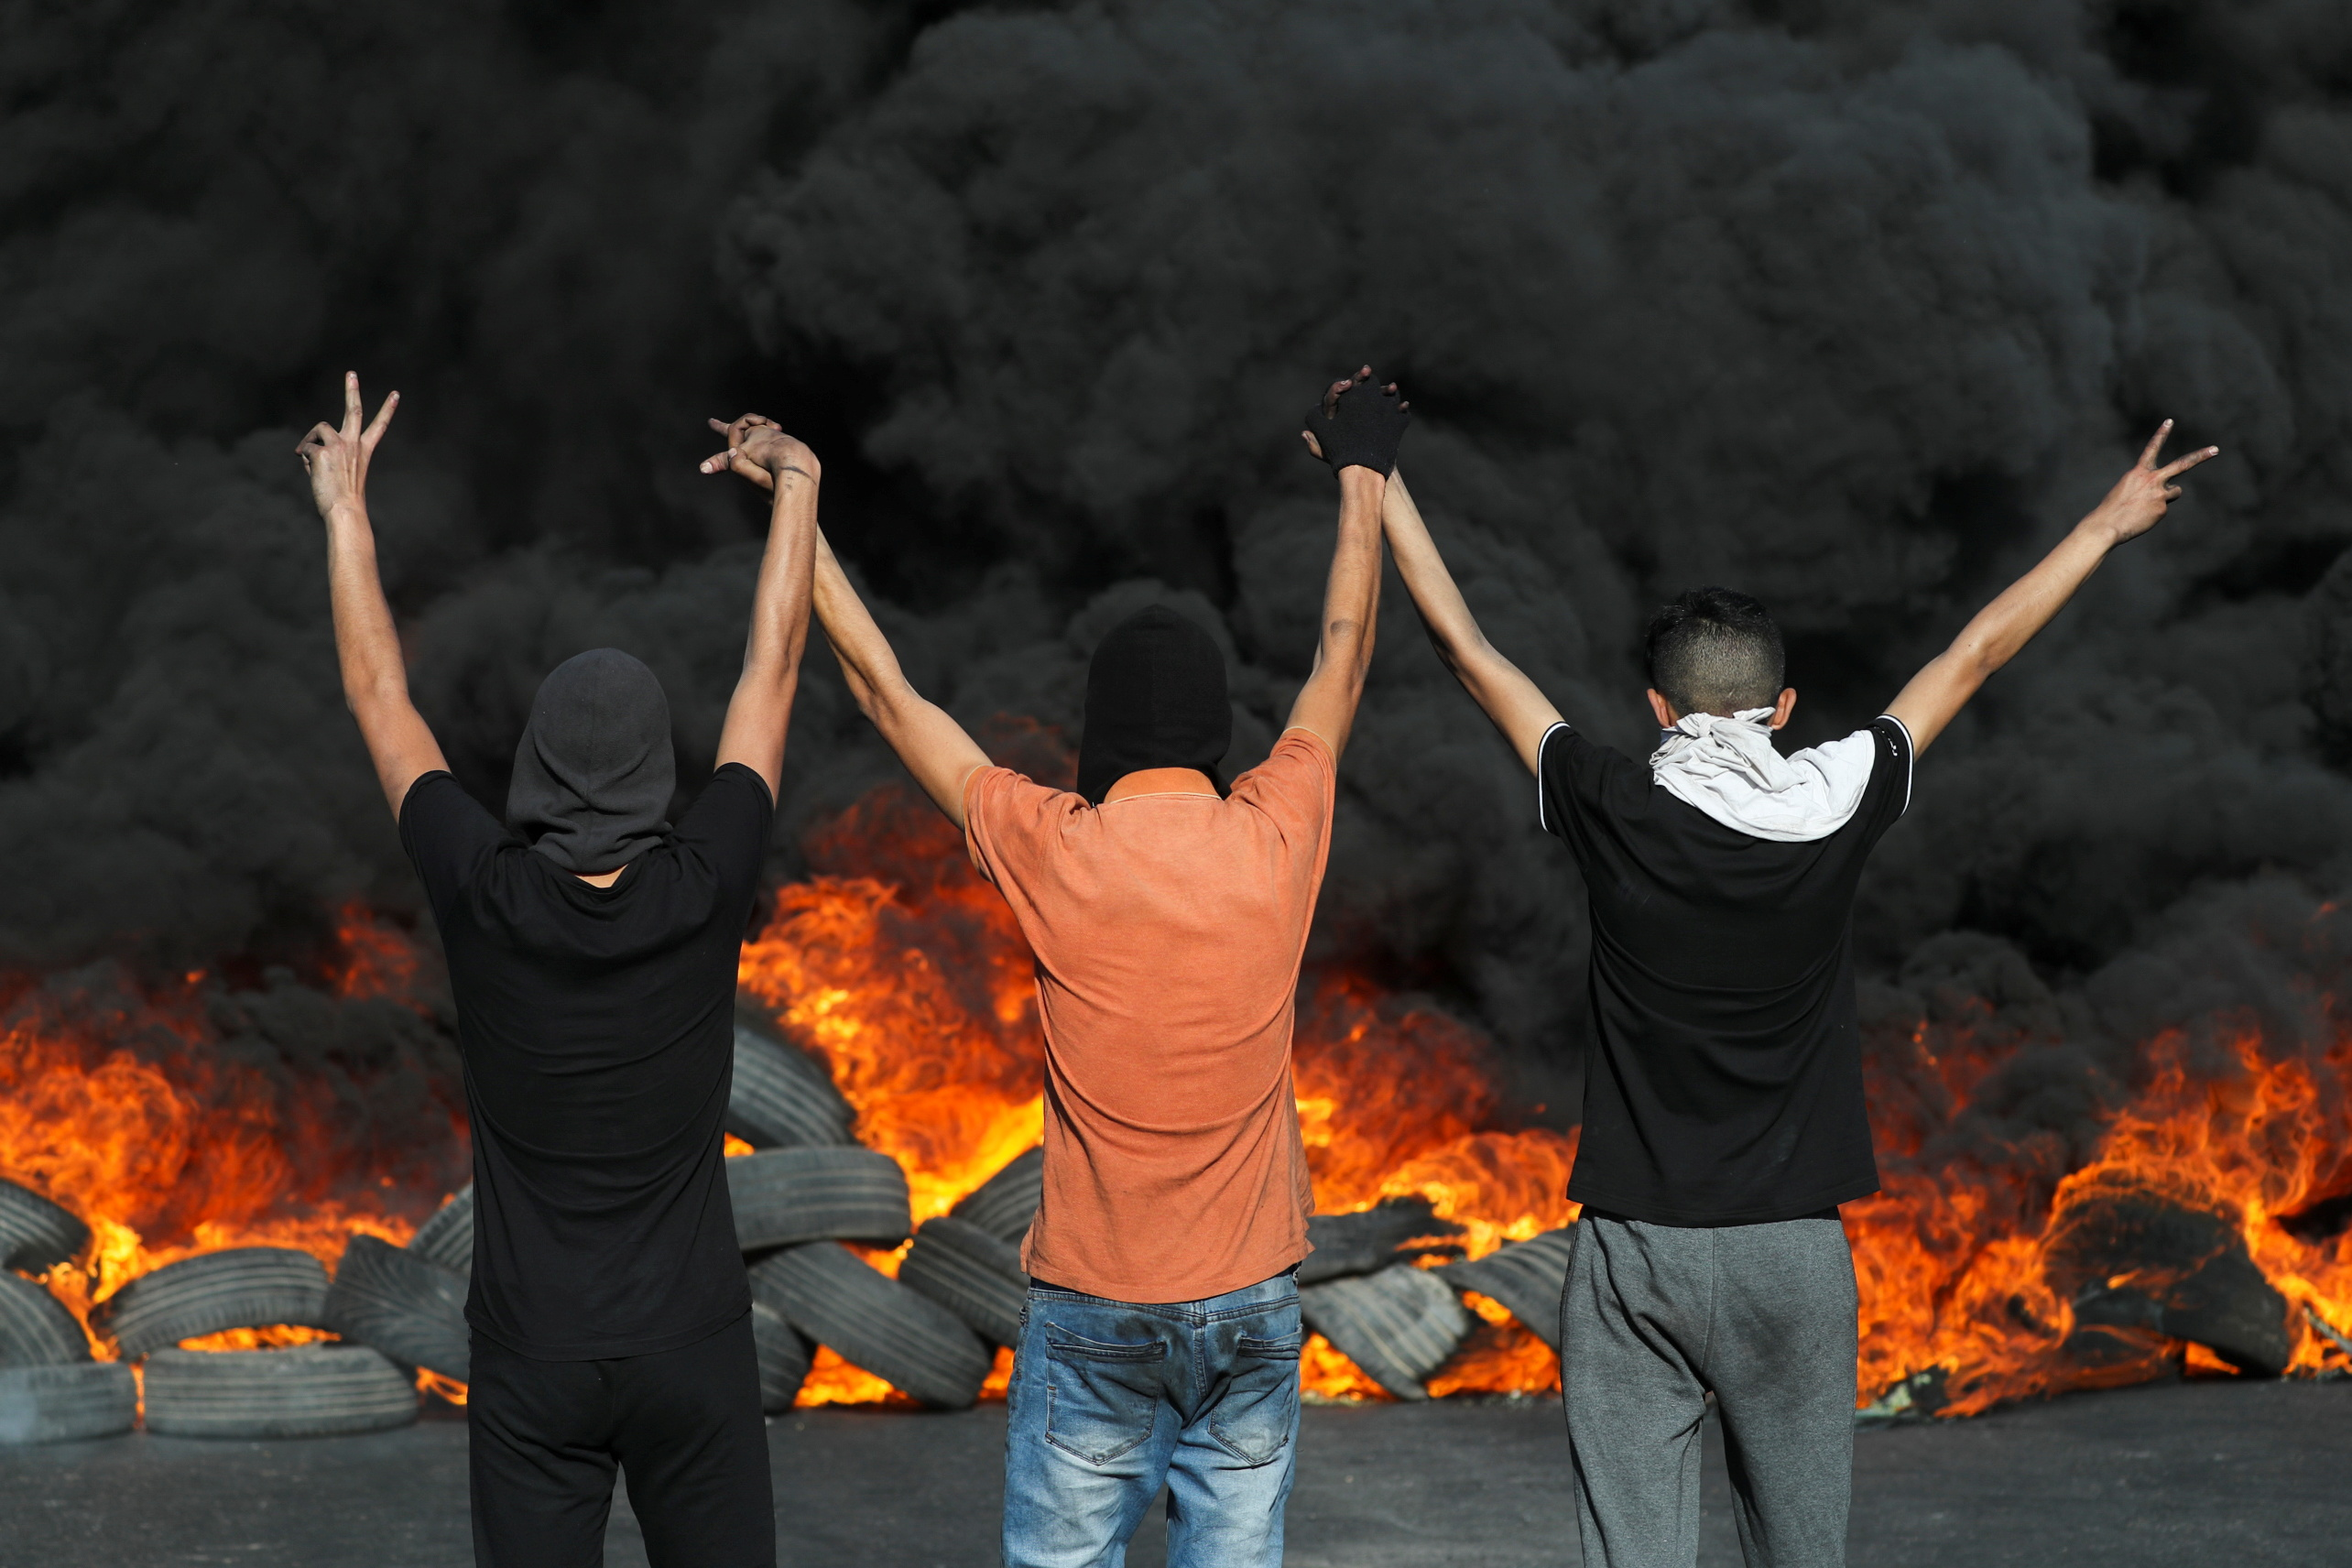 Palestinian demonstrators look at burning tires during a protest over tension in Jerusalem and Israel-Gaza escalation, in the Israeli-occupied West Bank, May 16, 2021. REUTERS/Ammar Awad